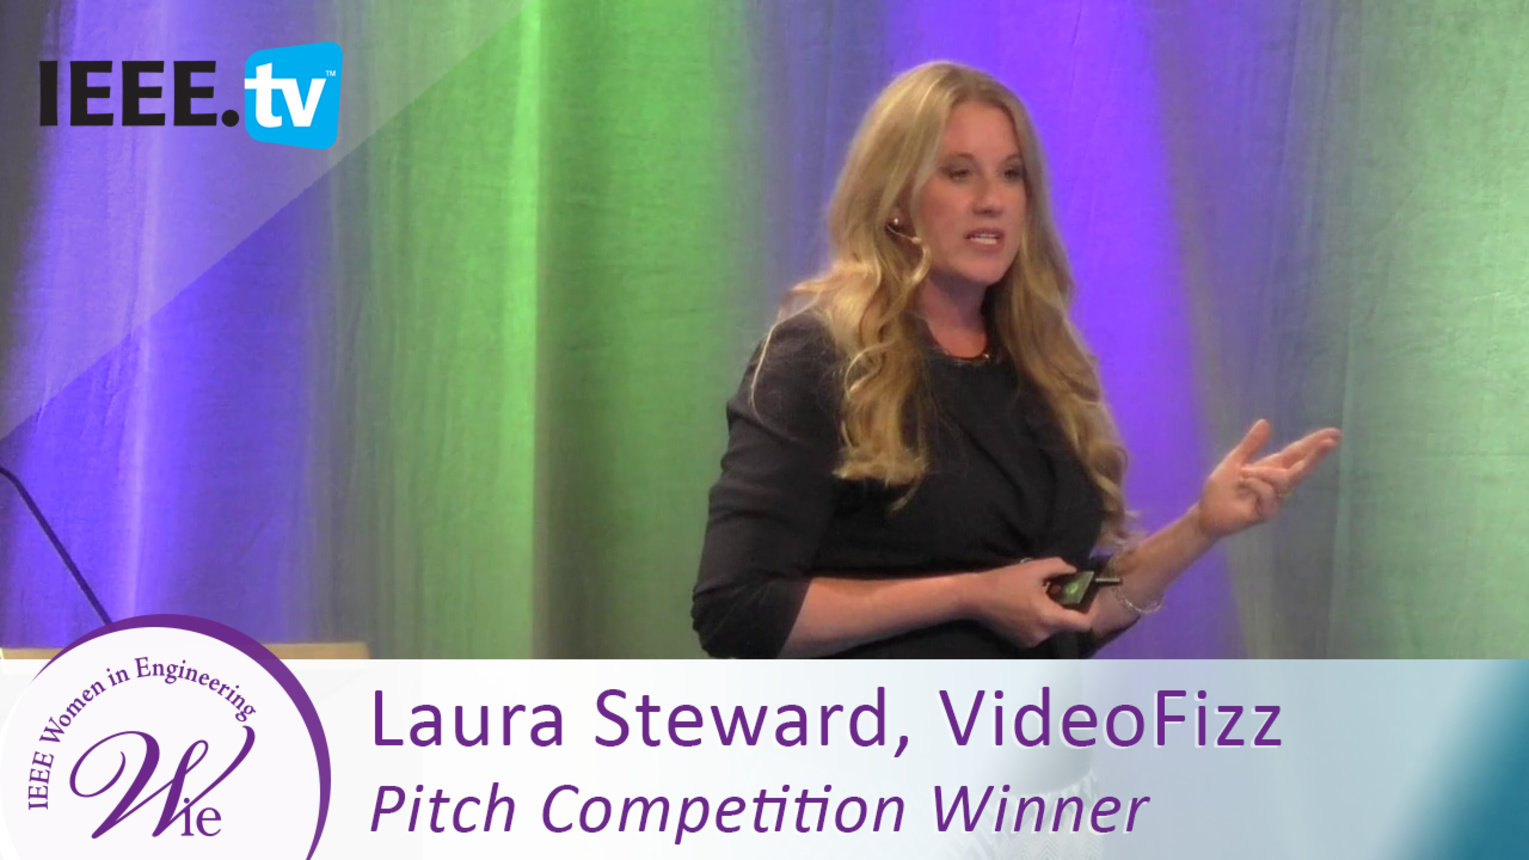 Pitch Competition Winner Laura Steward of Video Fizz - 2016 Women in Engineering Conference